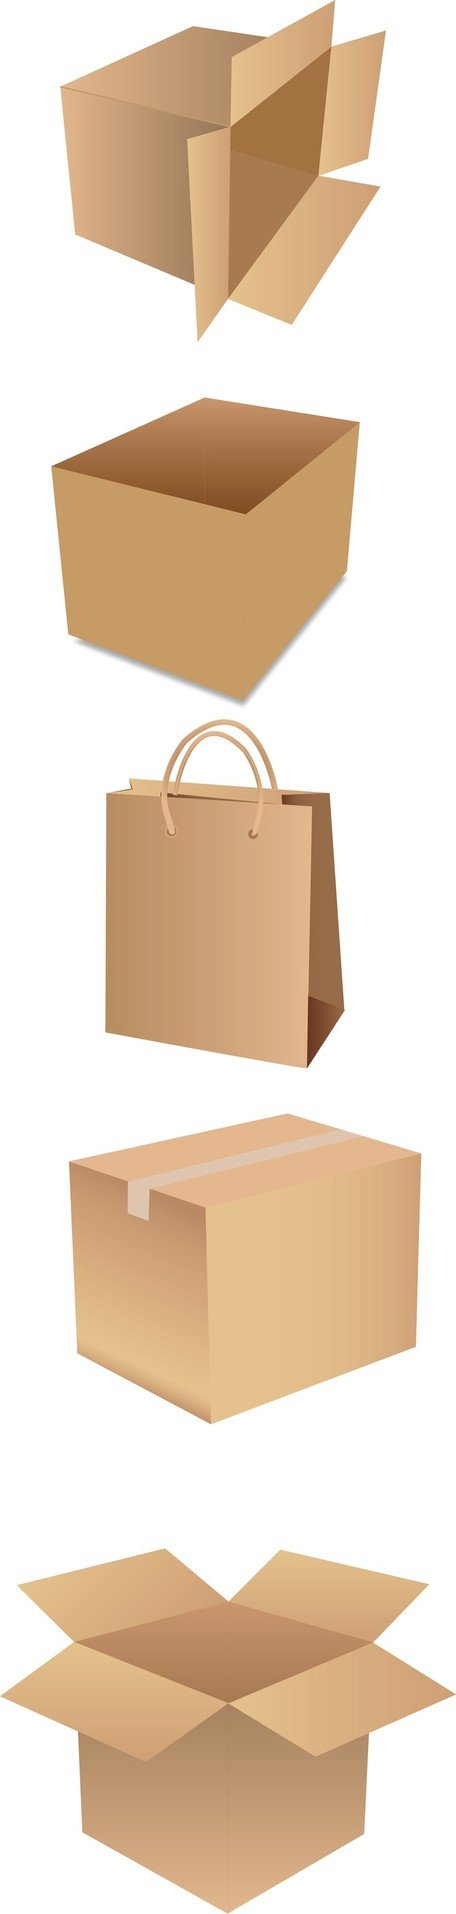 Shipping Box Psd images